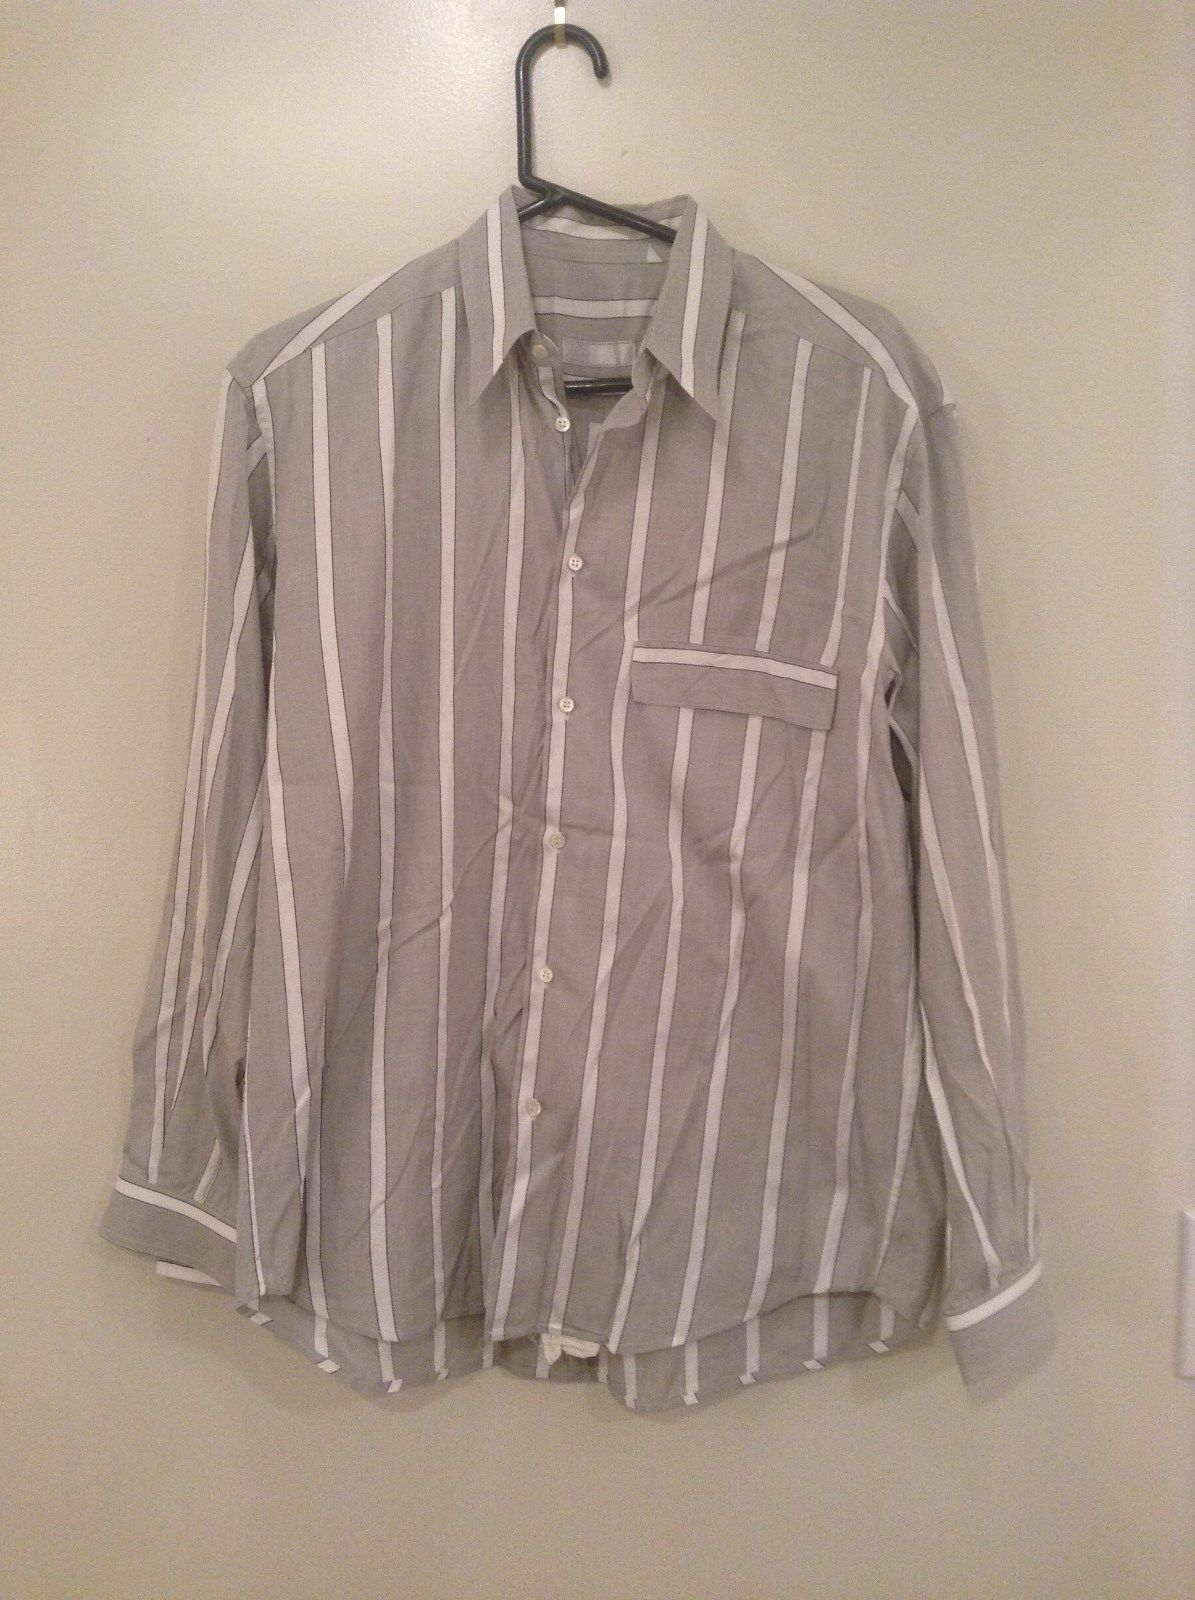 Gray and White Striped Button Up Shirt Chest Pocket NO TAGS Measurements Below